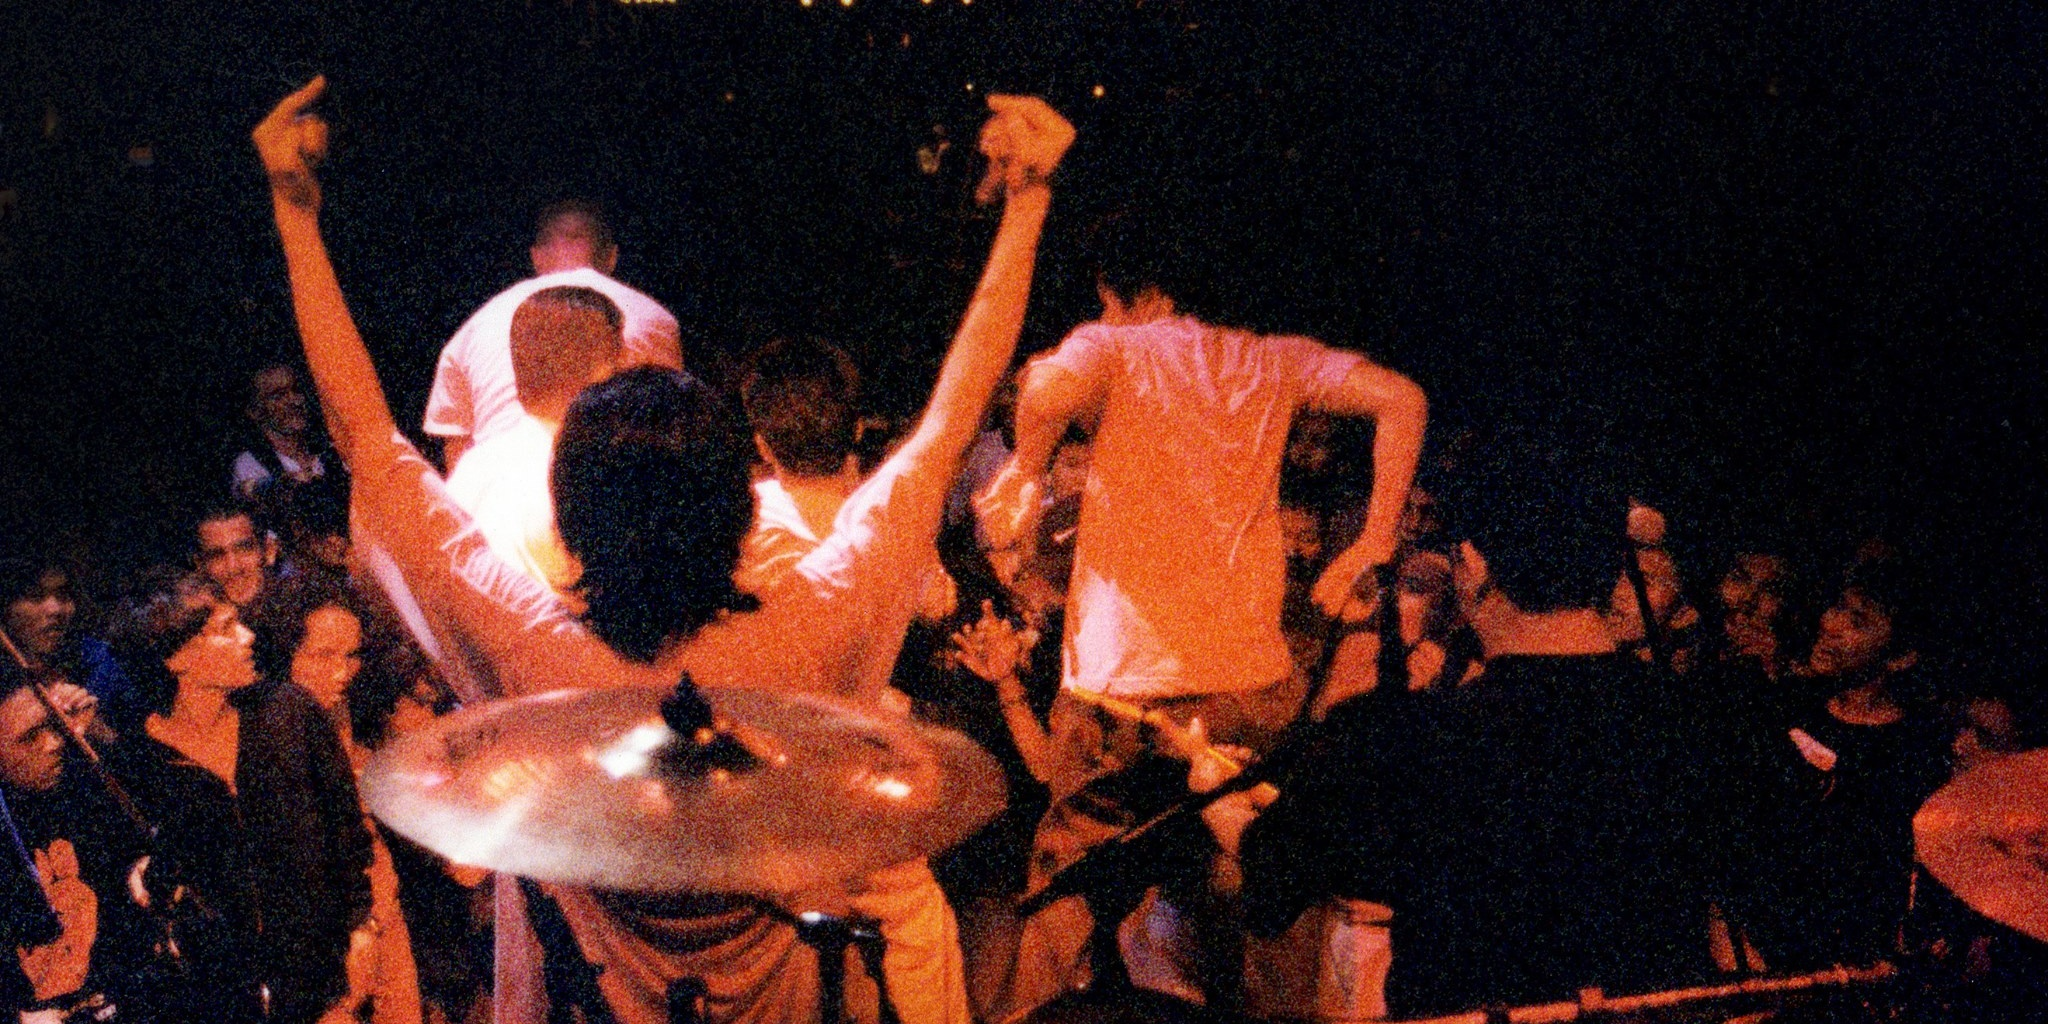 PHOTO GALLERY: Fugazi's frenzied second show in Singapore, 1996, with Stompin' Ground